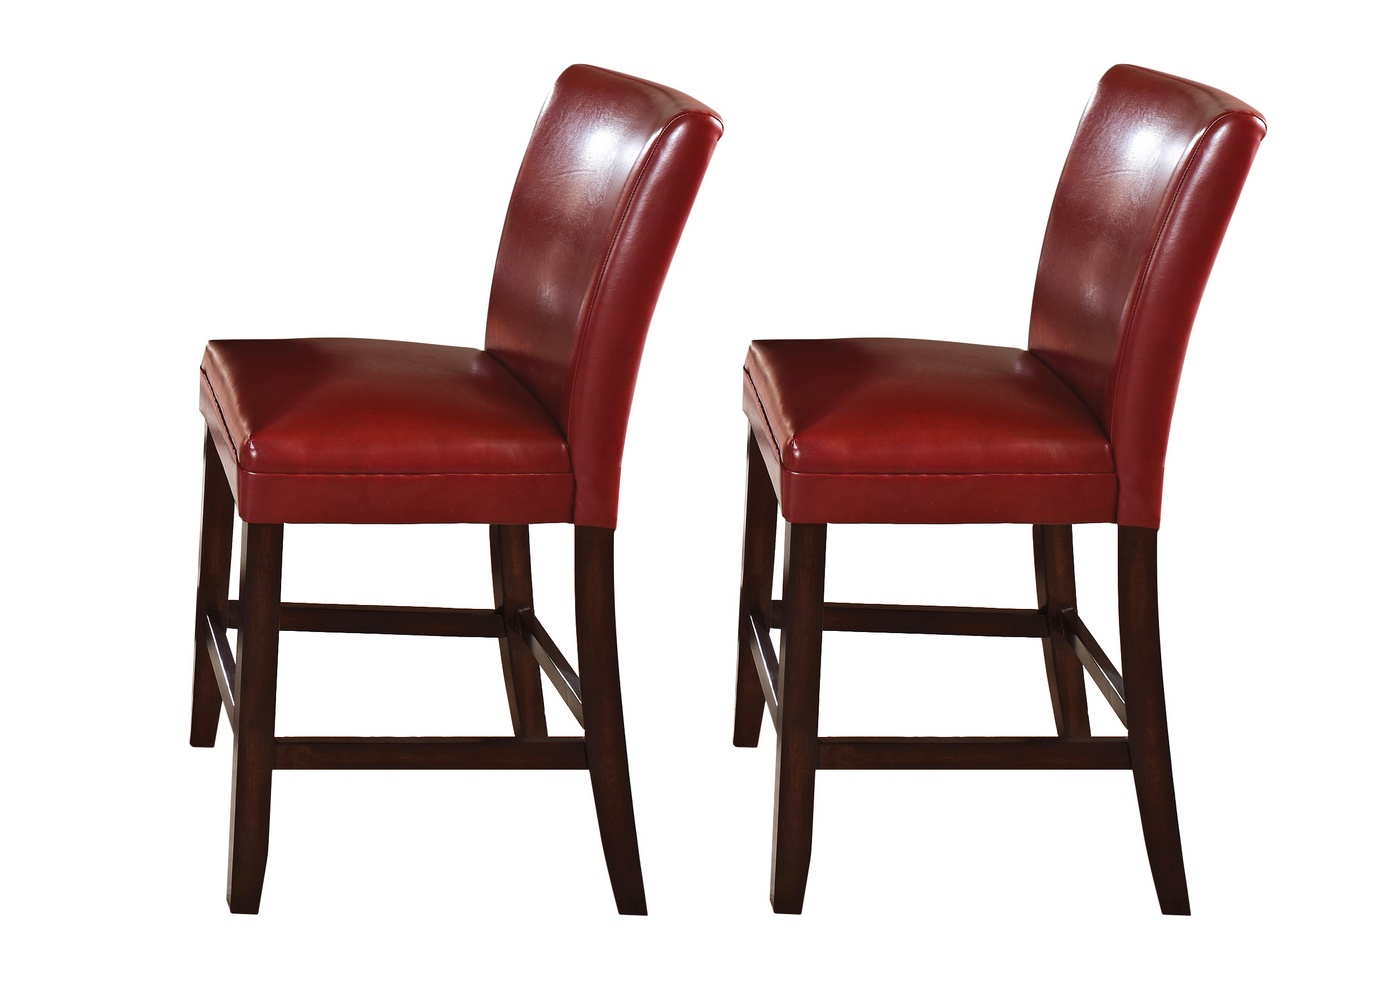 Upholstered Bar Chairs Set Of 2 Hartford Red Leather Upholstered Counter Height